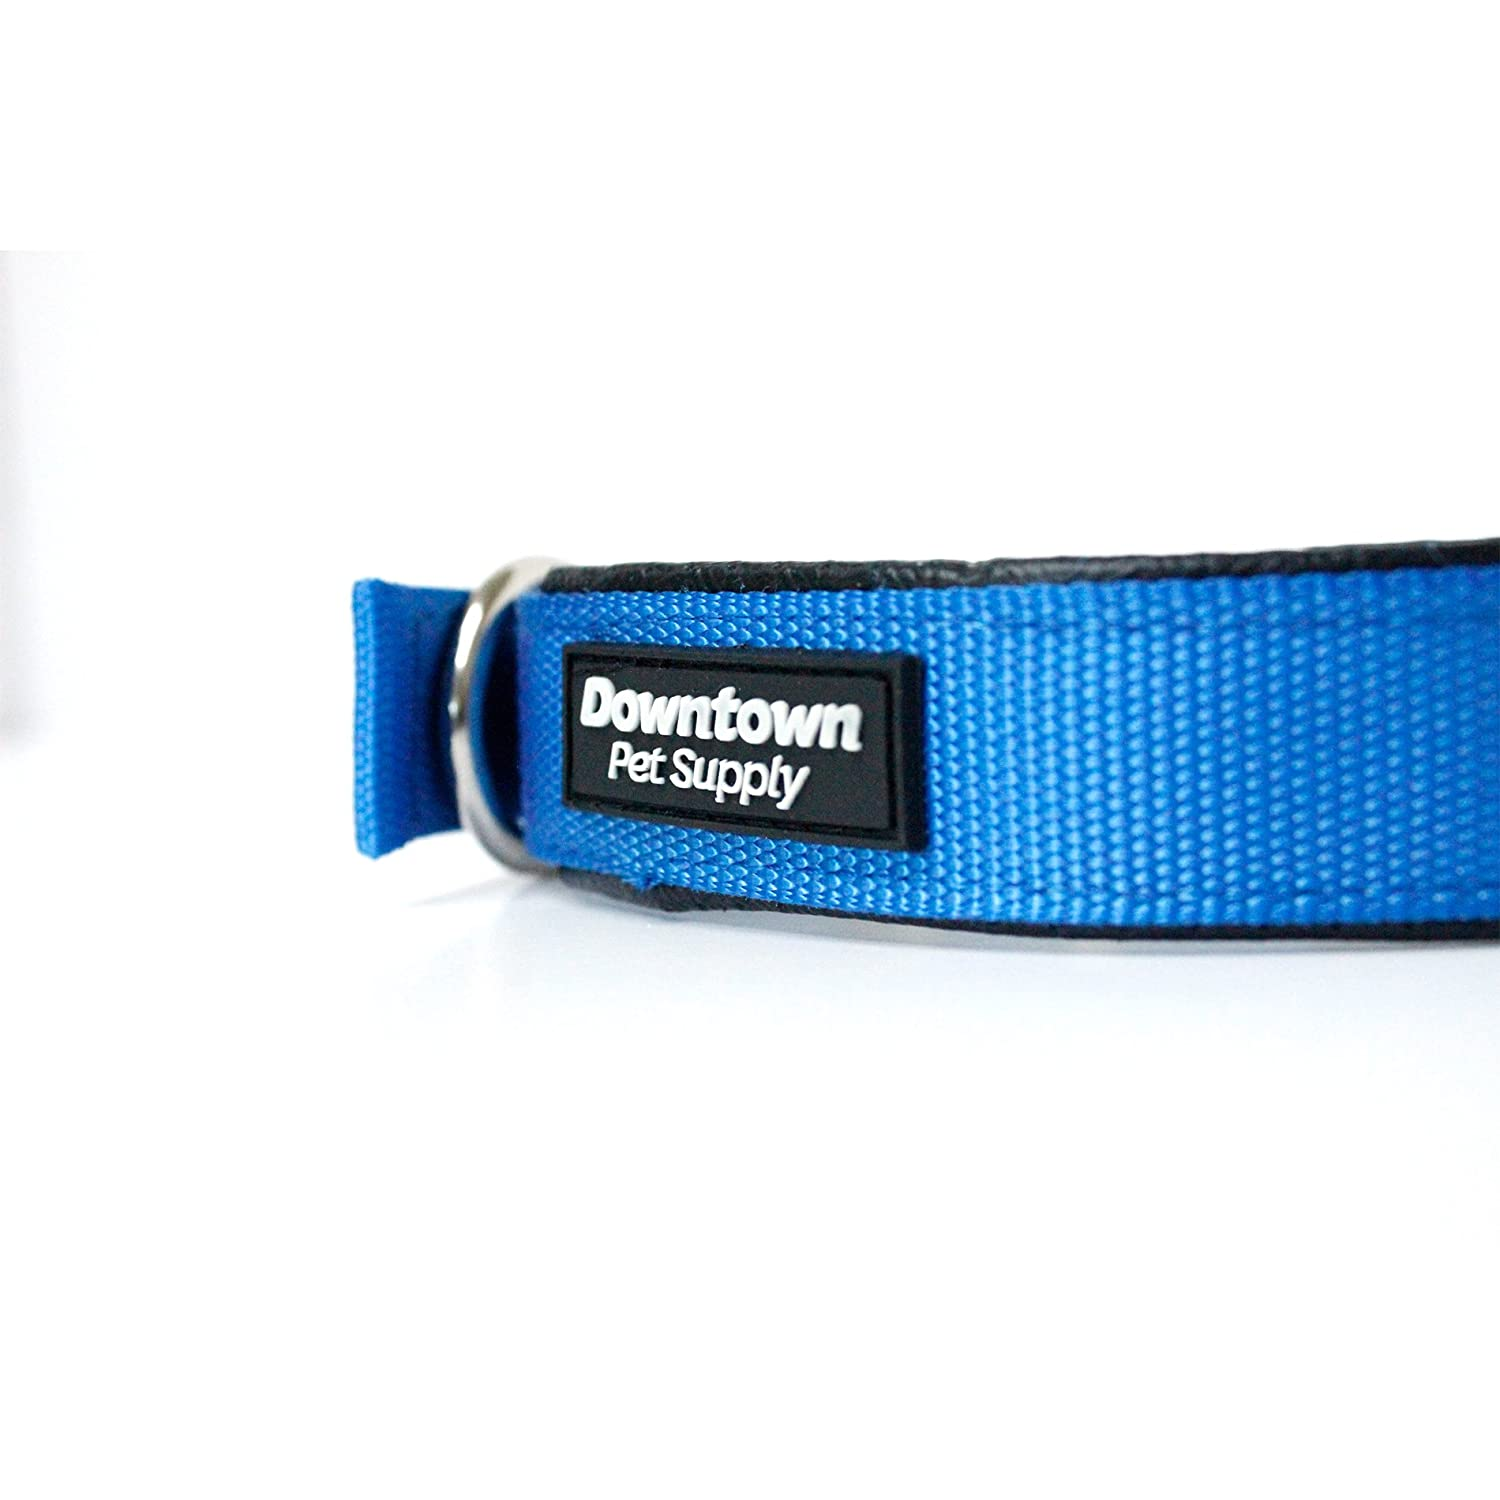 Red, XLarge by Downtown Pet Supply Deluxe Adjustable Thick Dog Collar,